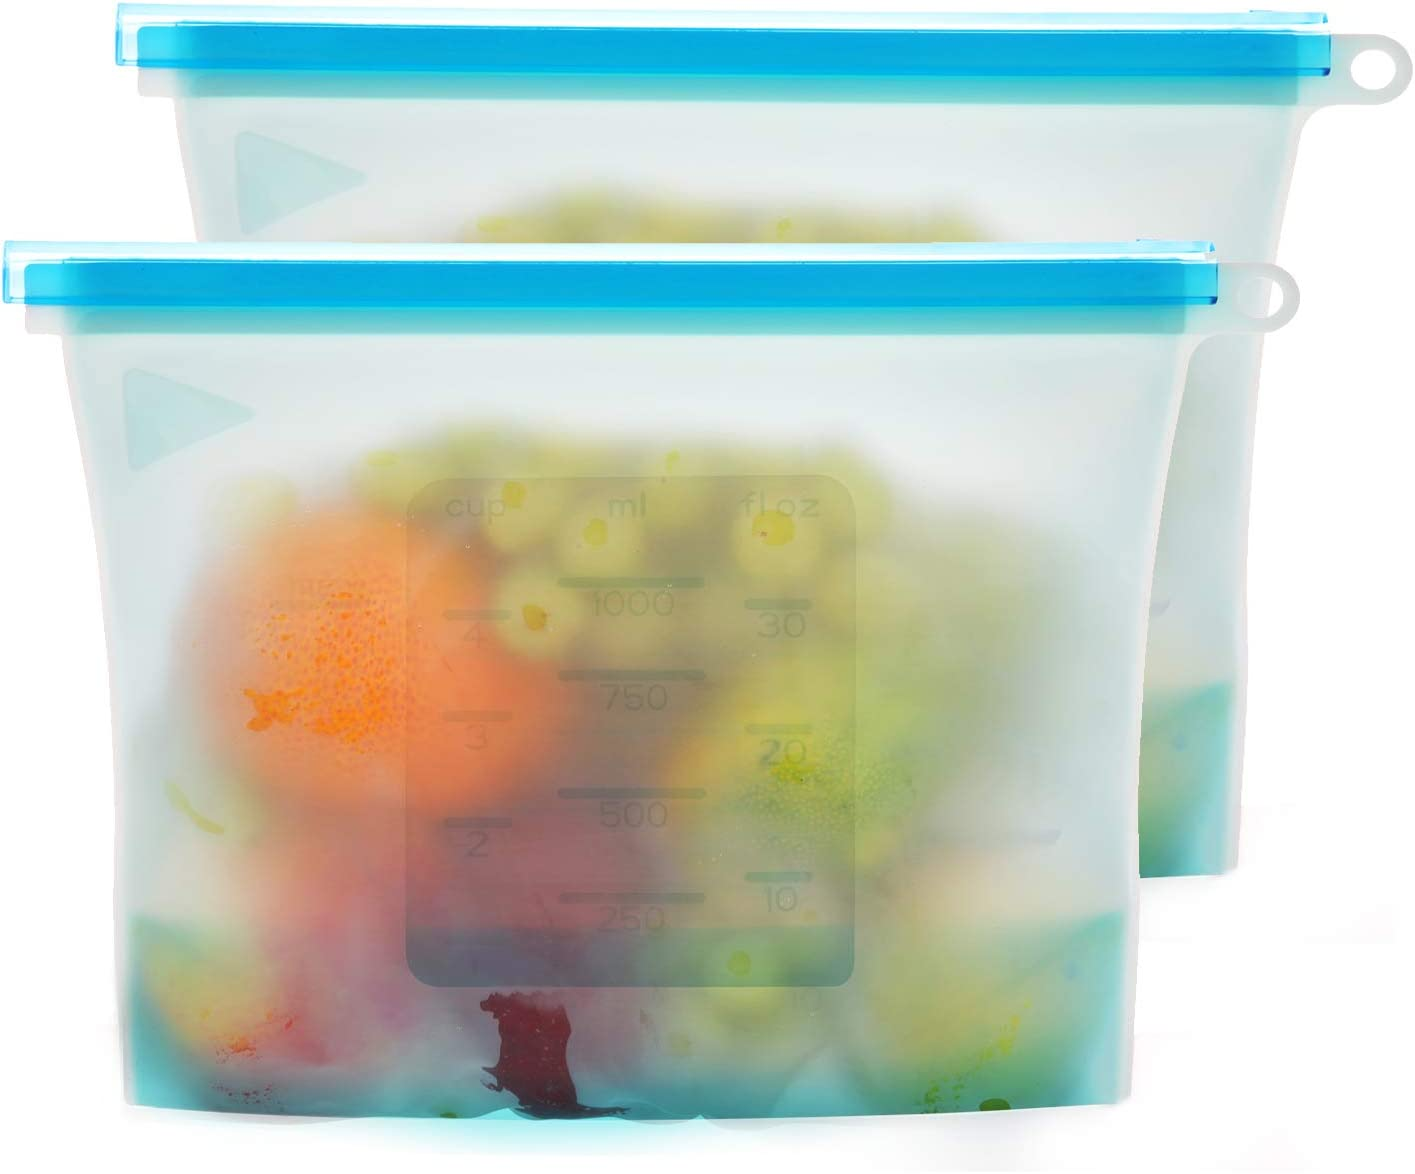 2pcs Reusable Silicone Food Storage Bags with Ziplock for Sous Vide Cooking, Sandwich, Liquid, Snack, Lunch, Fruit, Vegetable, Meat, Freezer Airtight Seal